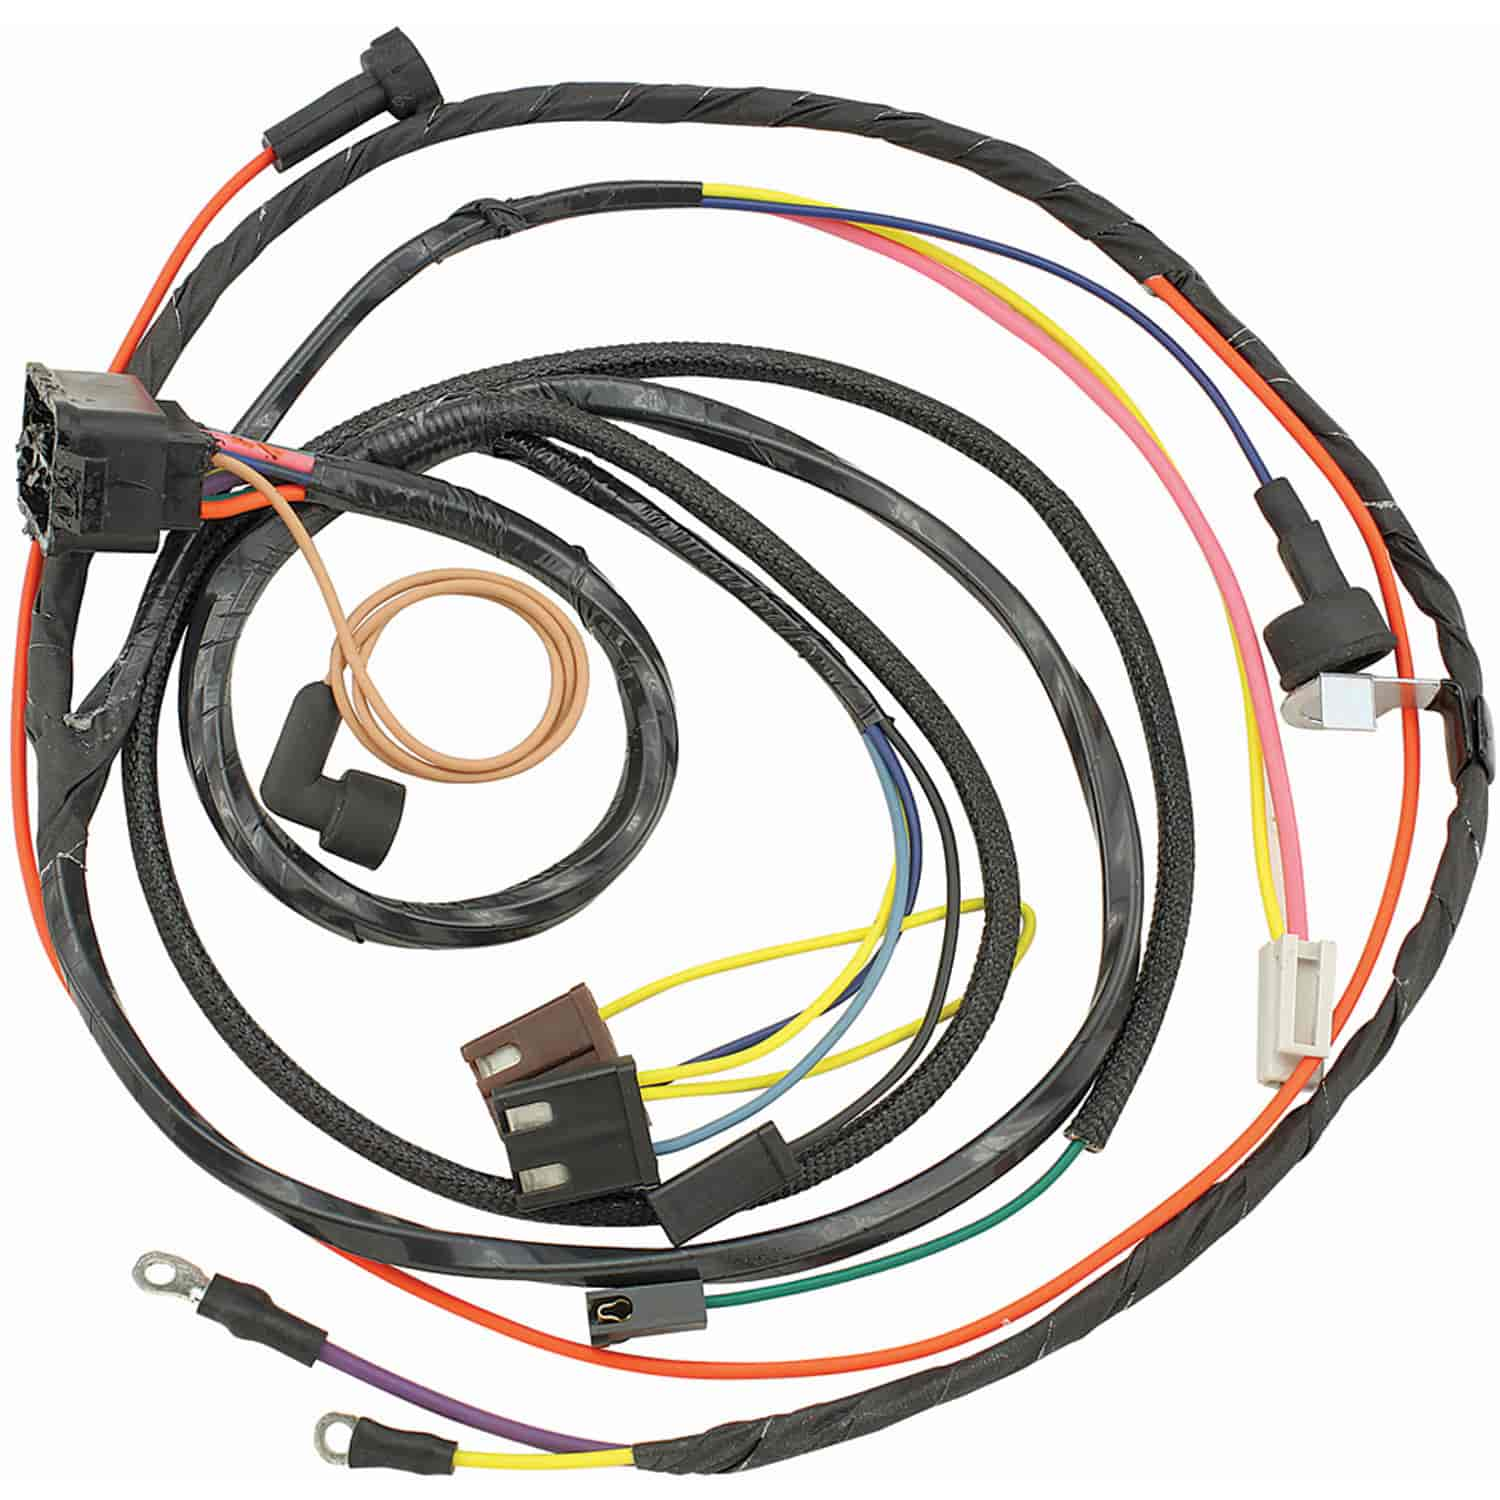 2008 Sprinter License Plate Light Wiring Diagram Auto Electrical 2002 Yukon Harness For Trailer Winches Bracket